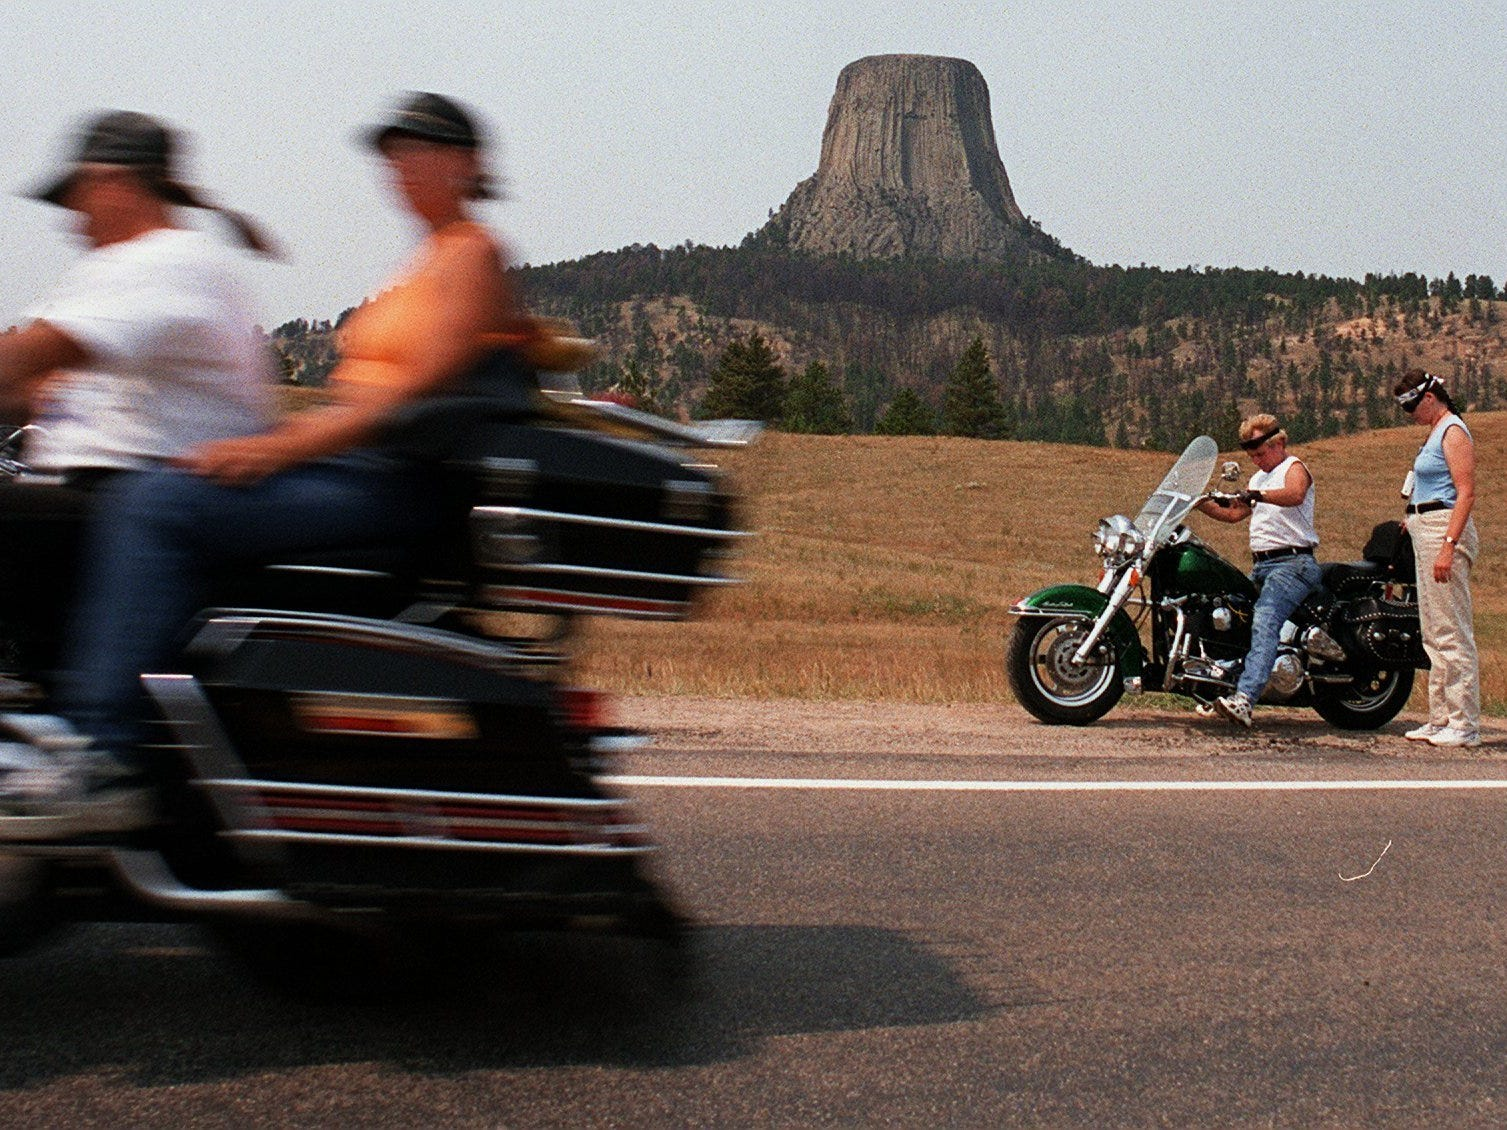 2001: Devils Tower National Monument,  tucked away in the northeastern corner of Wyoming, is a popular attraction for thousands of people on their way to Sturgis, S.D. The nearly vertical monolith rises 1,267 feet above the surrounding land and is a sacred site of worship for many American Indians. In 1906, President Theodore Roosevelt made it the nation's first national monument.